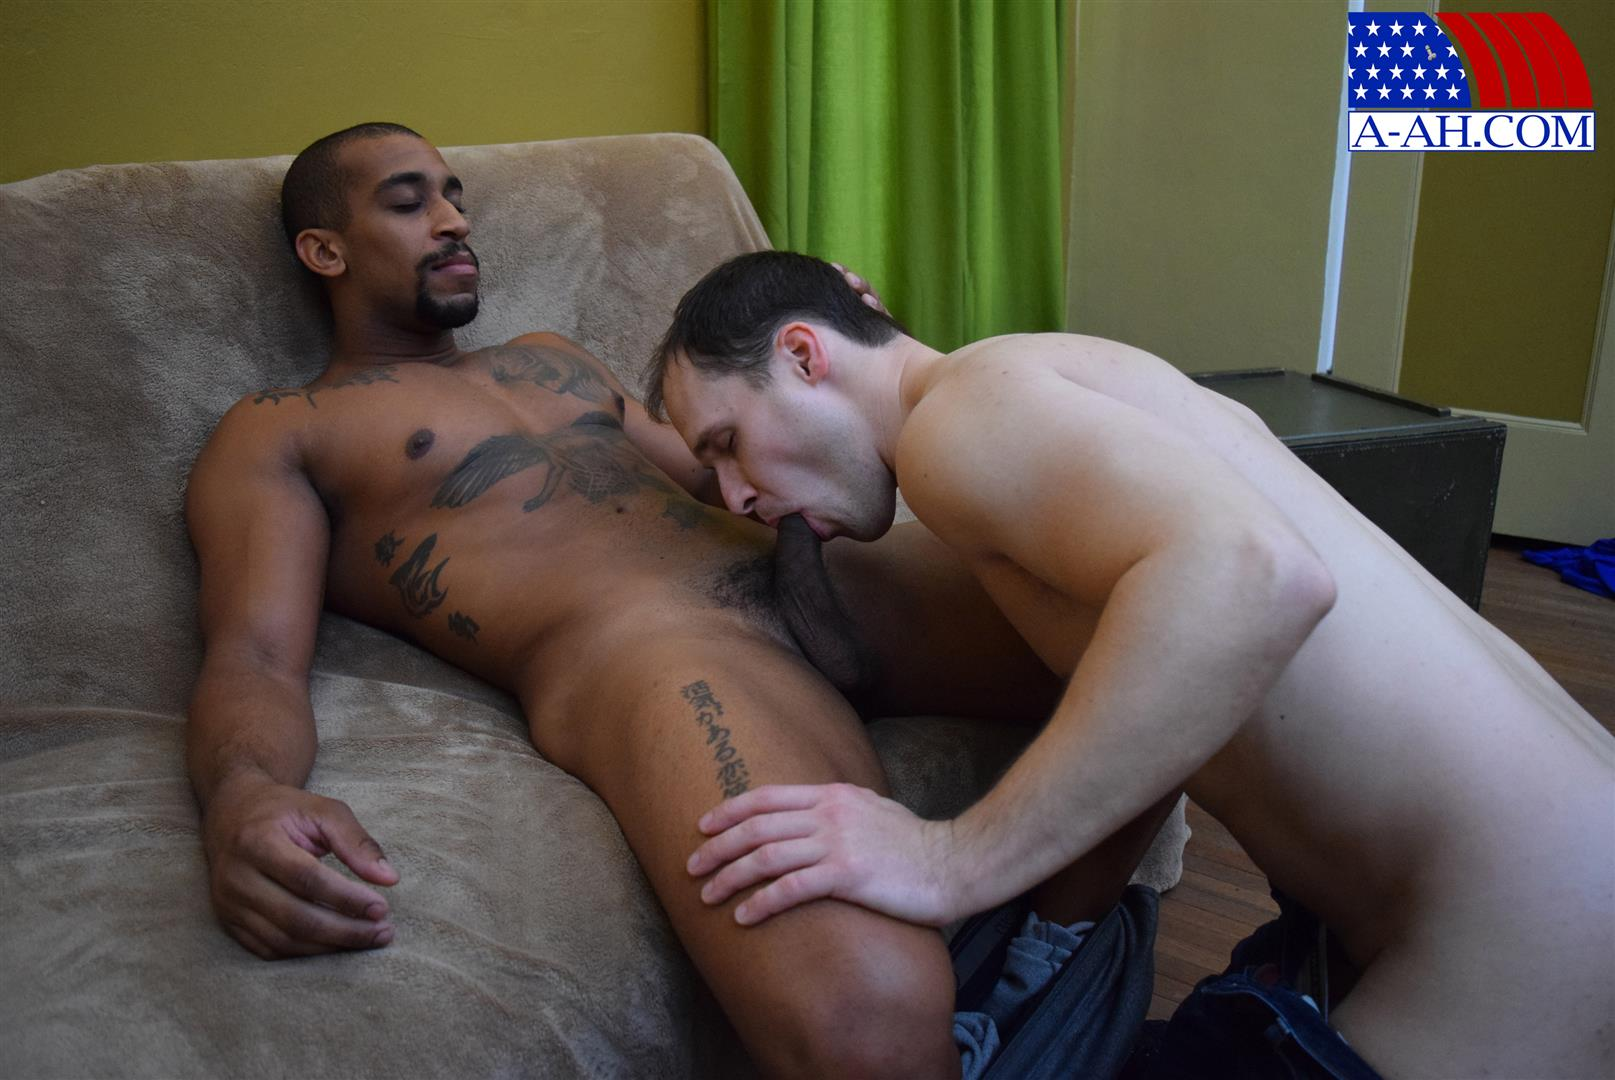 All-American-Heroes-Interracial-Naked-Soldiers-Fucking-Bareback-Amateur-Gay-Porn-03 White Navy Petty Officer Fucks A Black Army Lieutenant